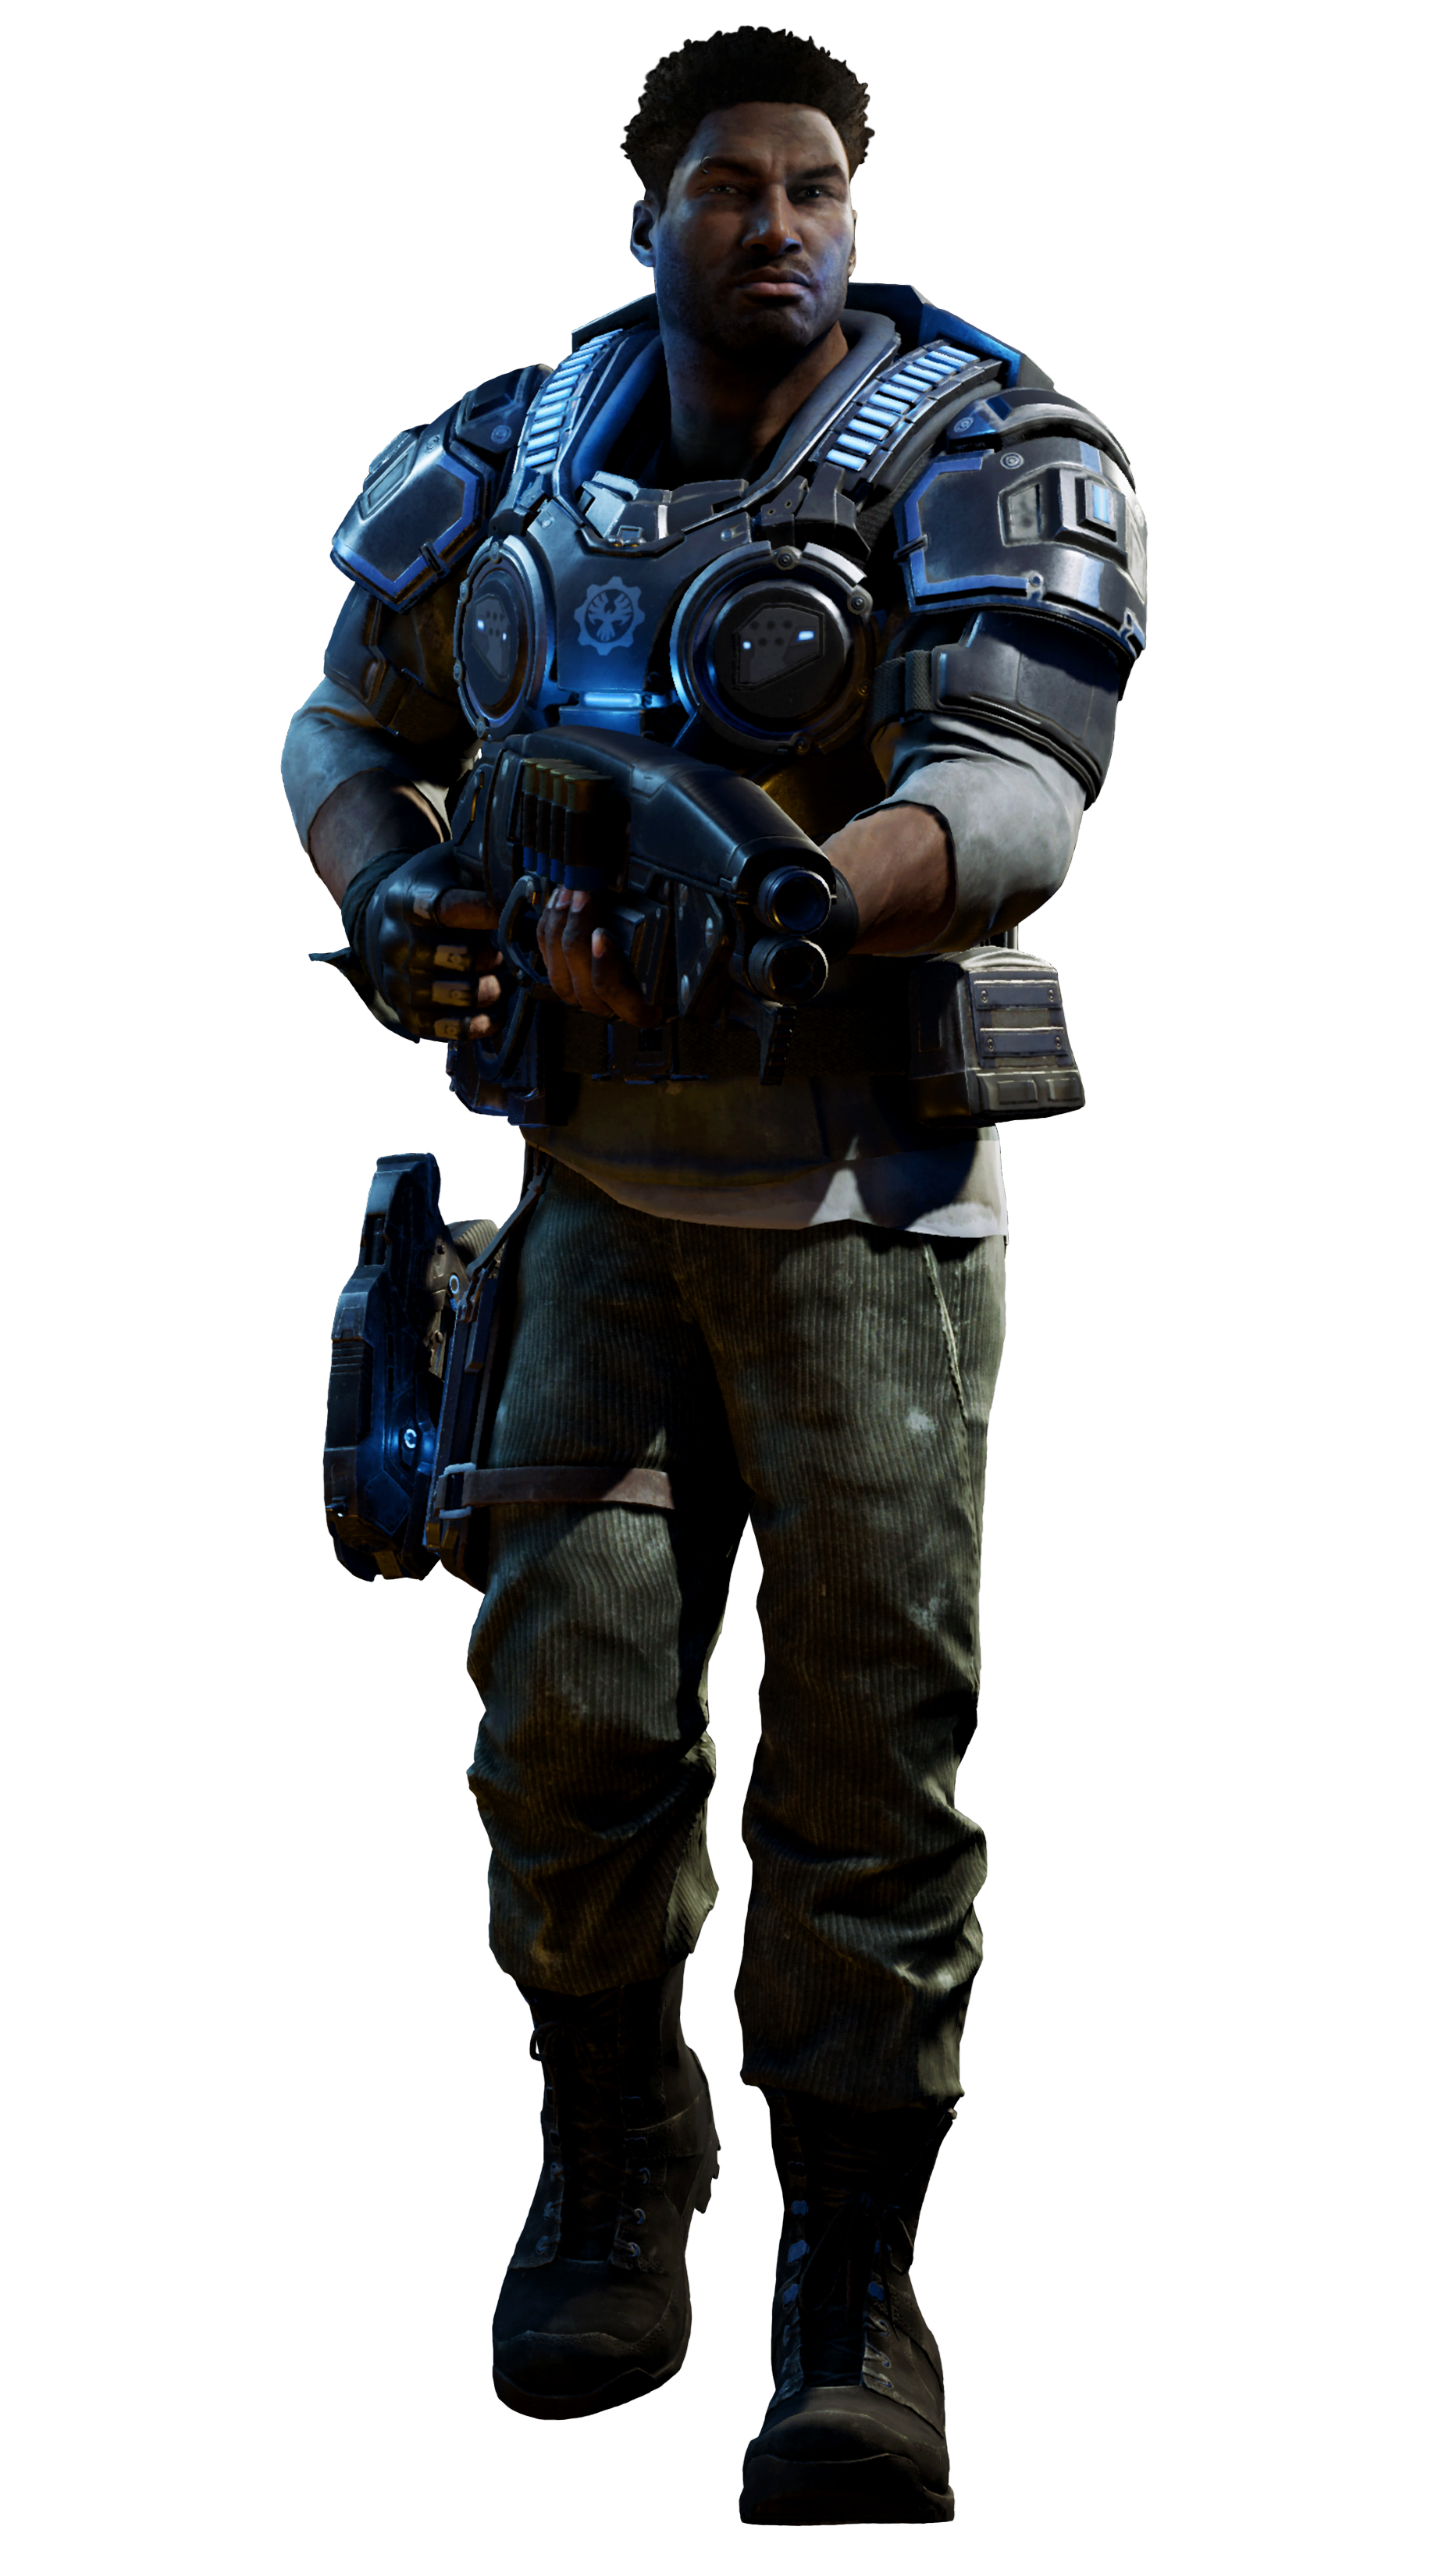 As is common knowledge among fans like myself, the Male figures are more  expanded on, showing an increase in body size, and exaggerated muscles. - Gears Of War HD PNG